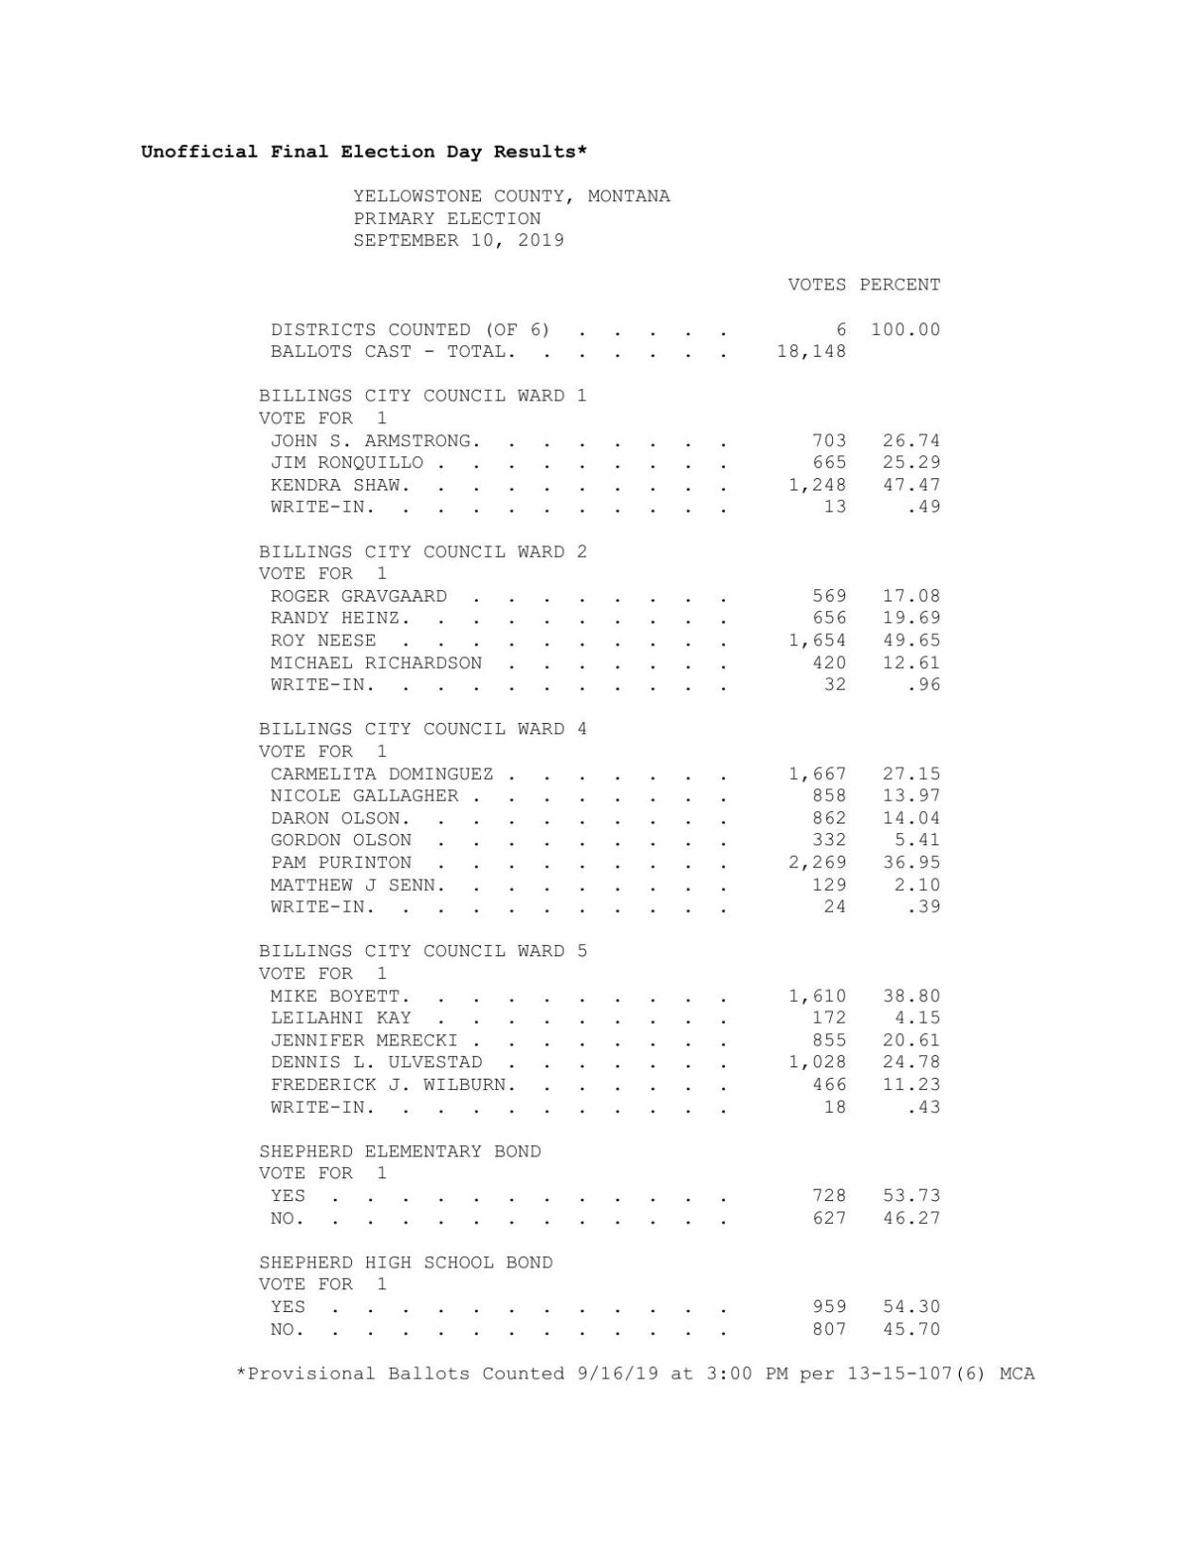 Yellowstone County Primary Results Sept. 10, 2019